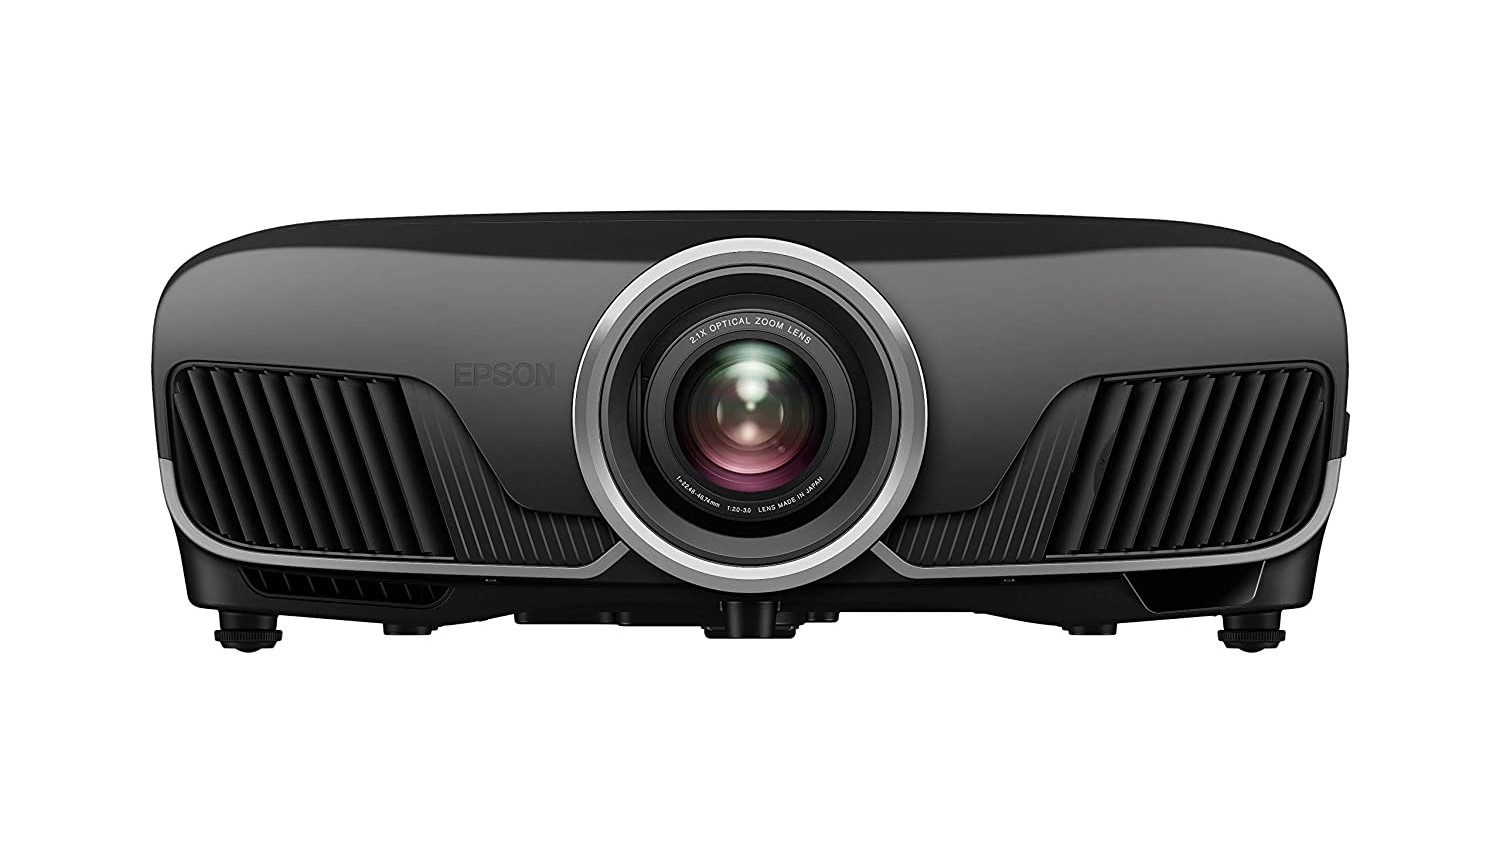 A head on view of the Epson EH-TW9400 / Pro Cinema 6050UB projector